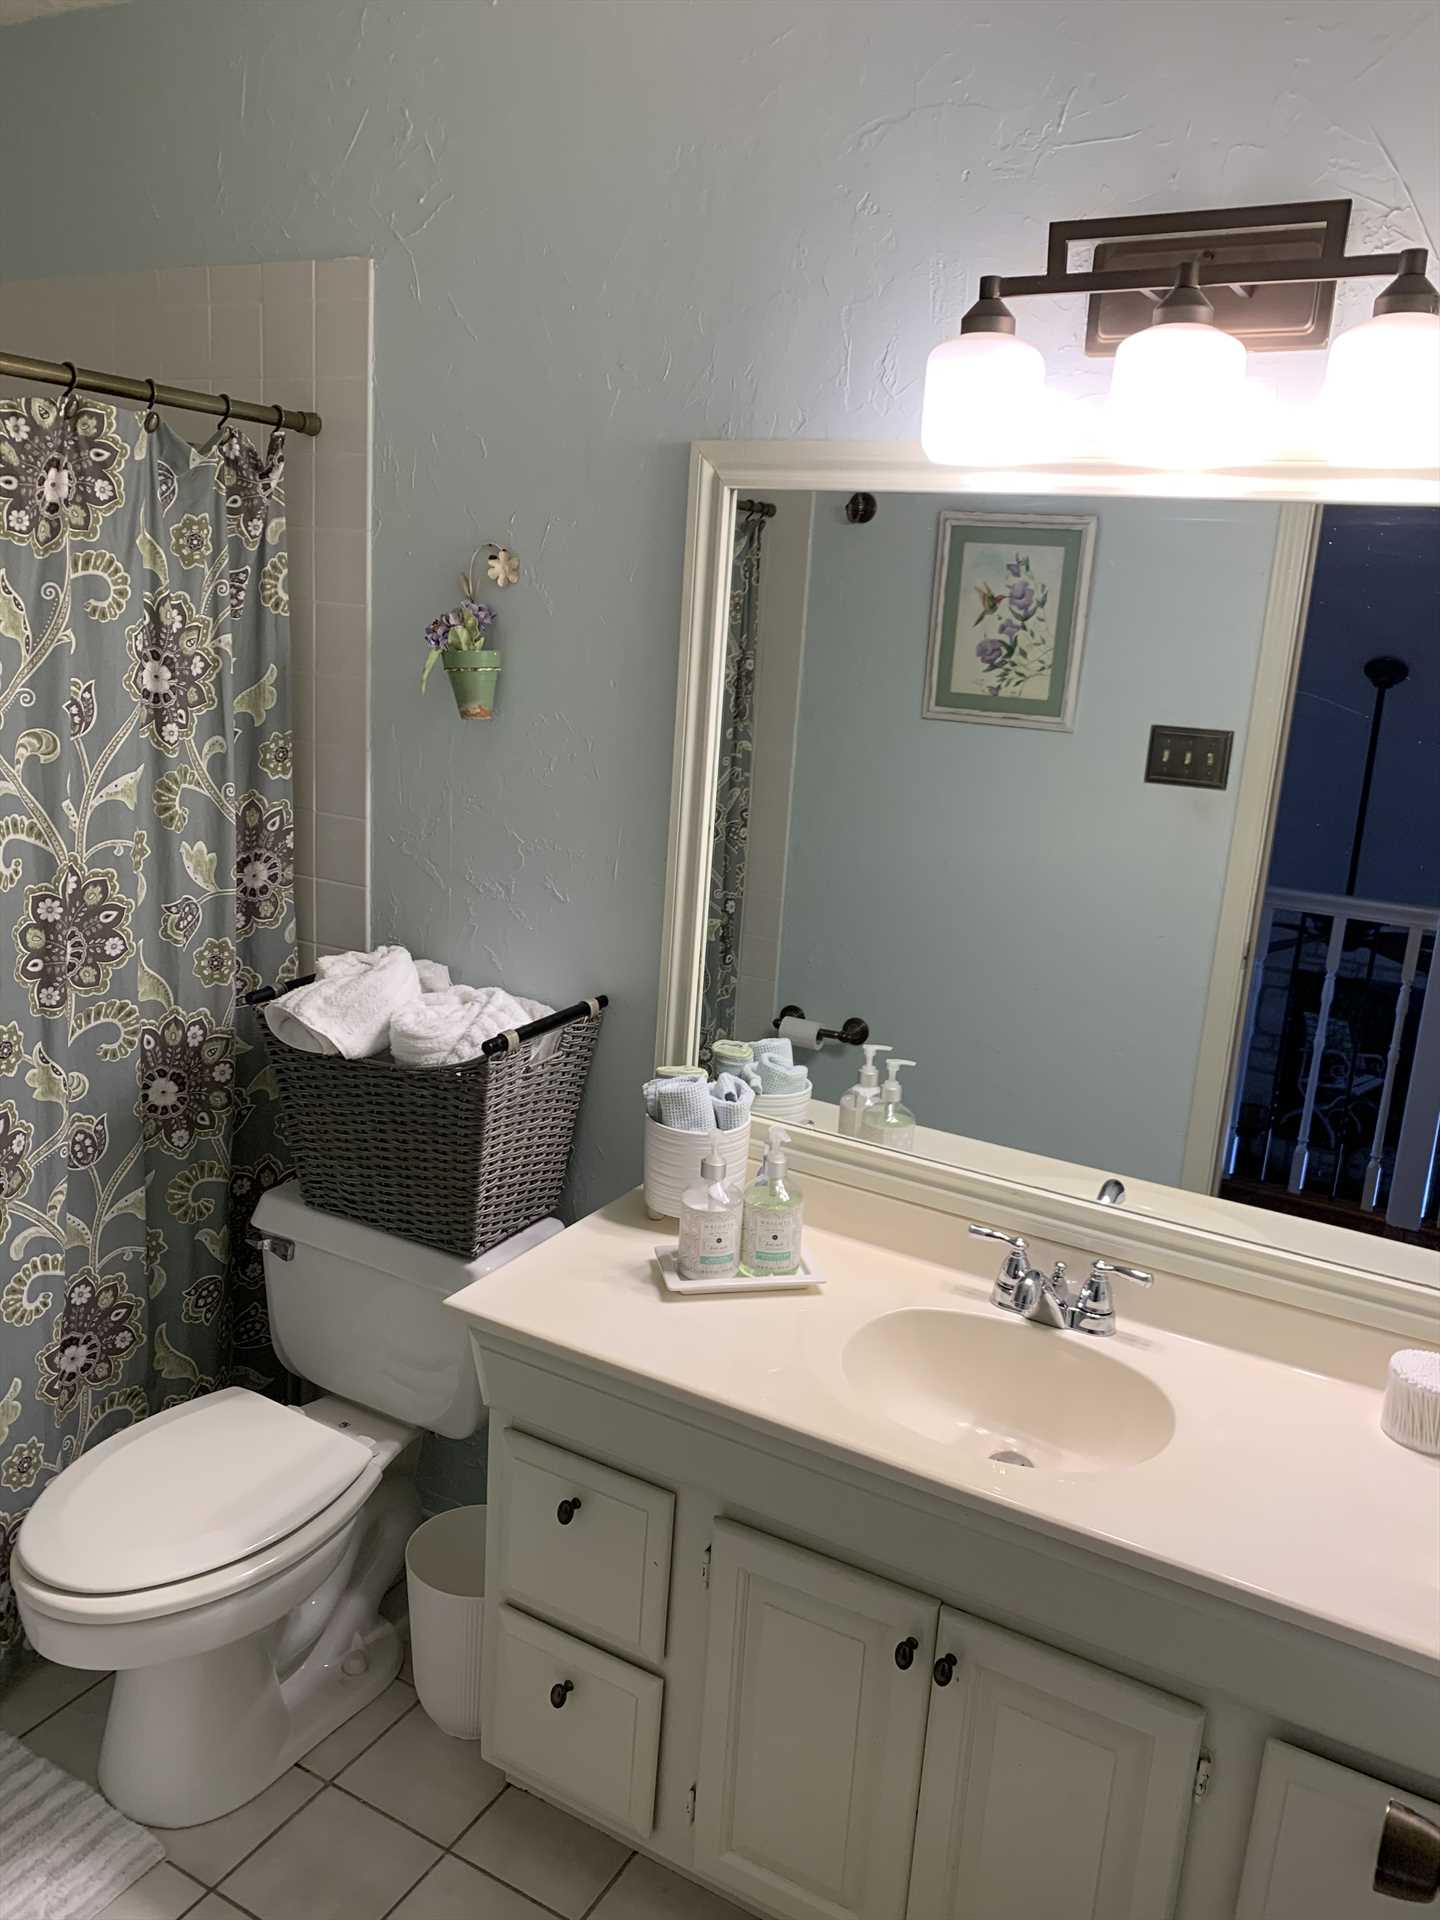 The full bath upstairs includes a tub and shower combo, along with plenty of fresh linens for your cleanup routine.